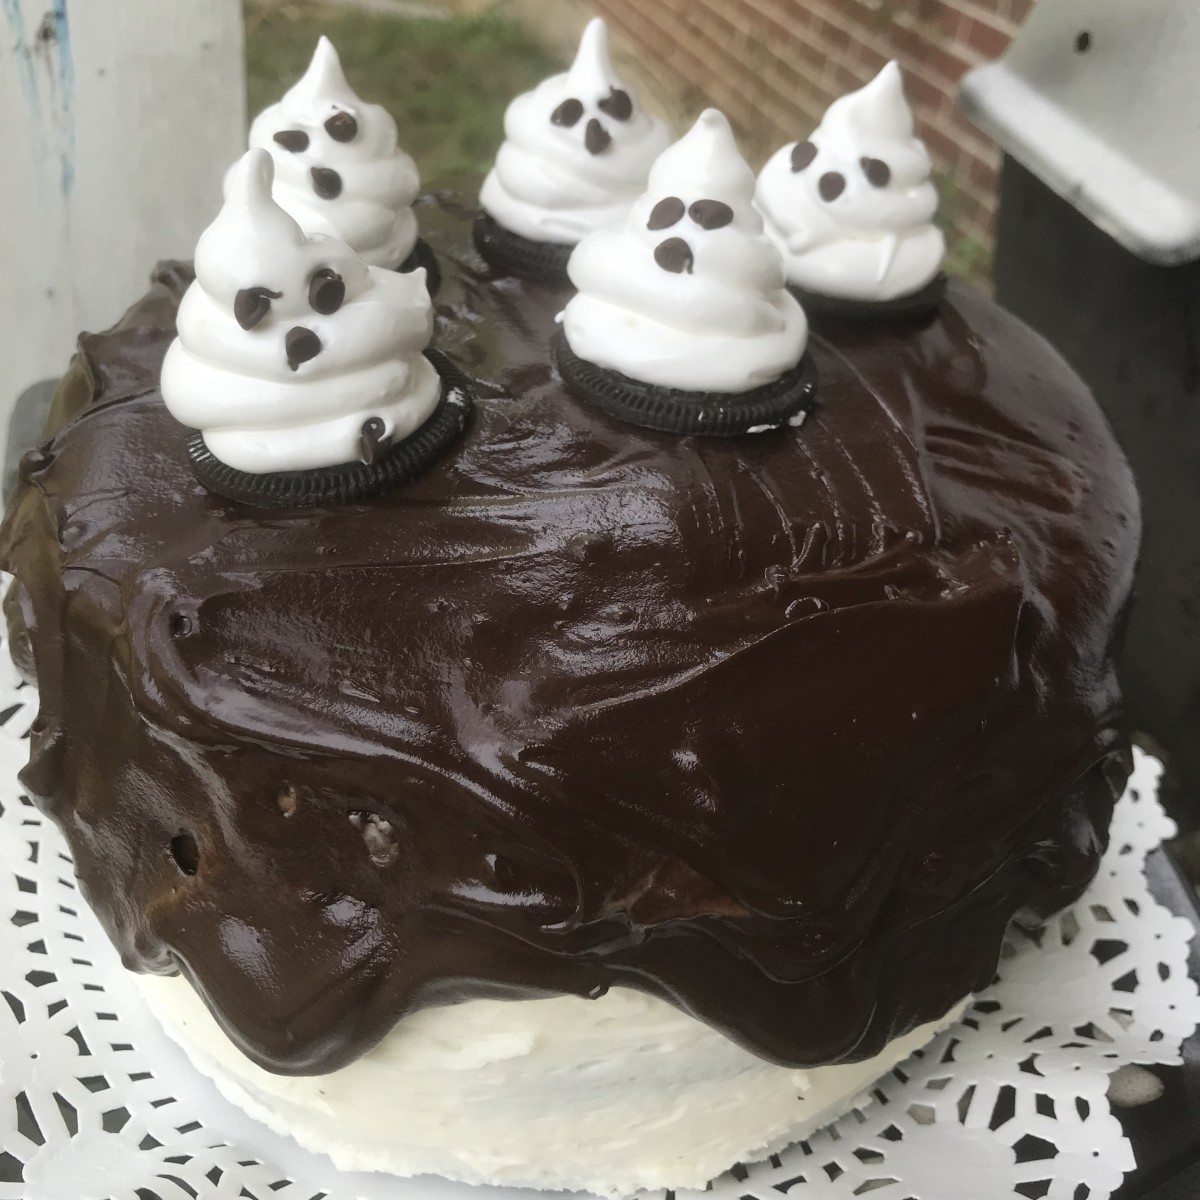 Black Velvet Cake: Perfect for Halloween